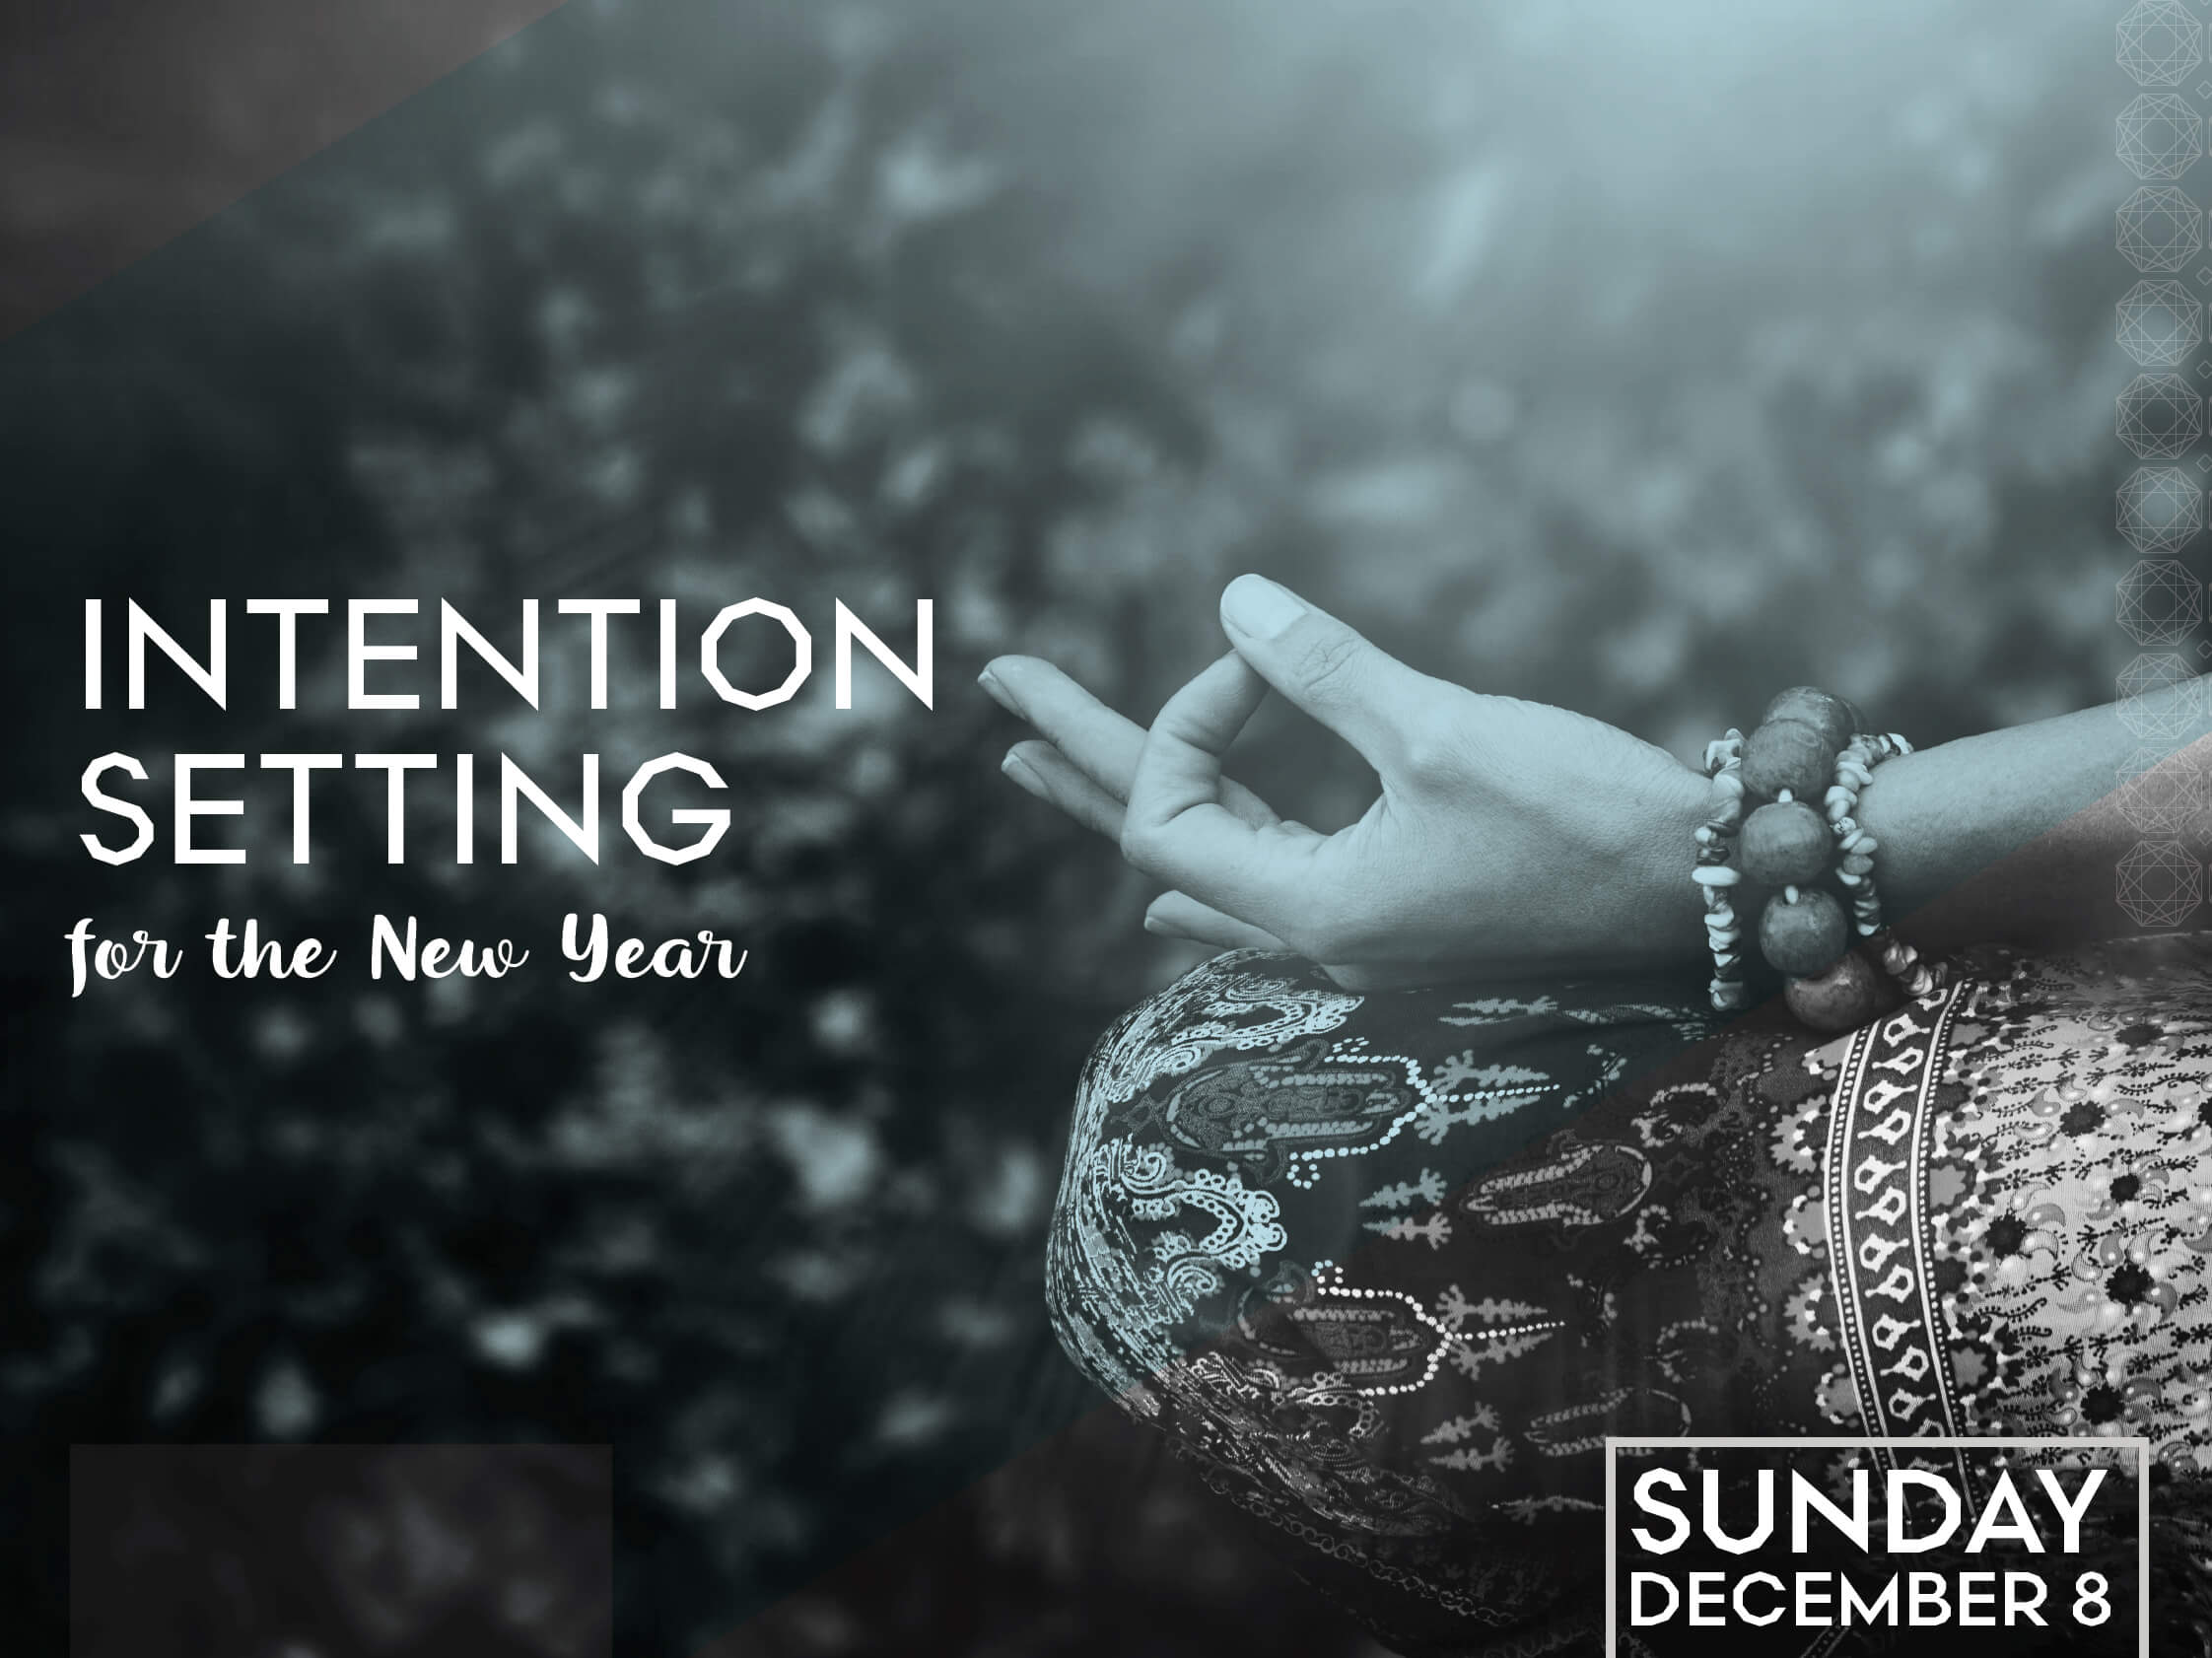 Intention Setting for the New Year